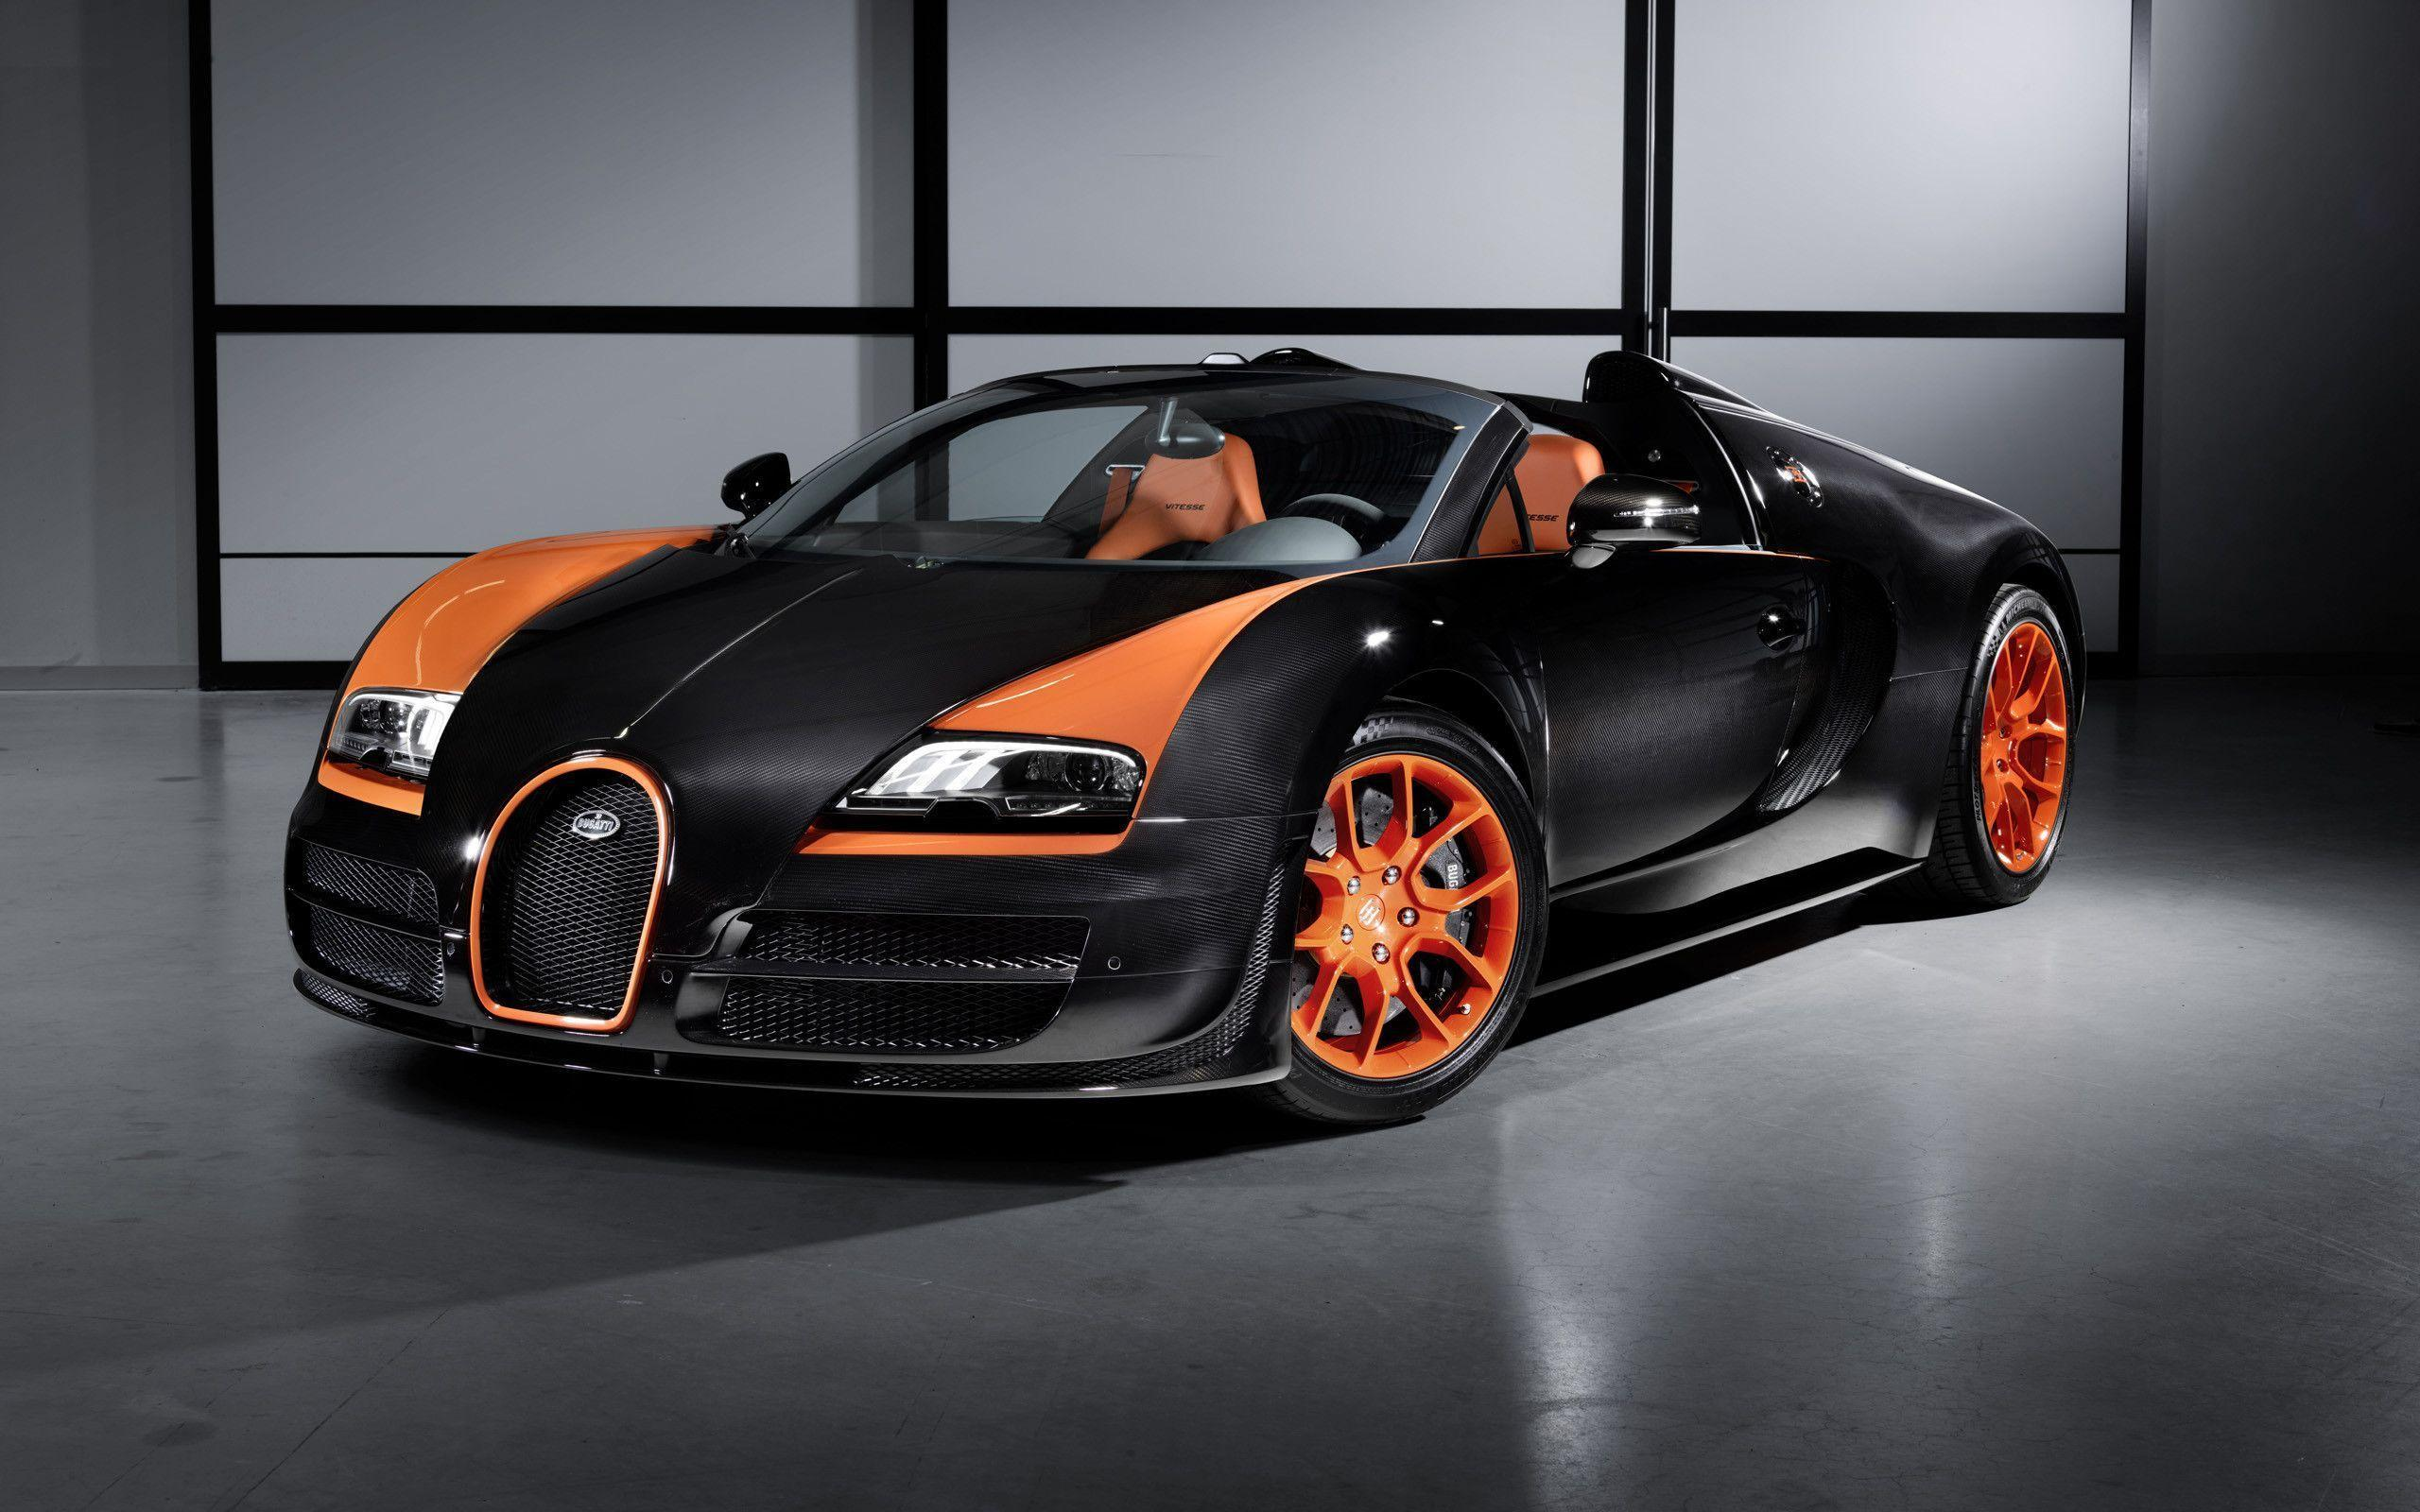 2013 Bugatti Veyron 16 4 Grand Sport Vitesse Wallpapers | HD ...